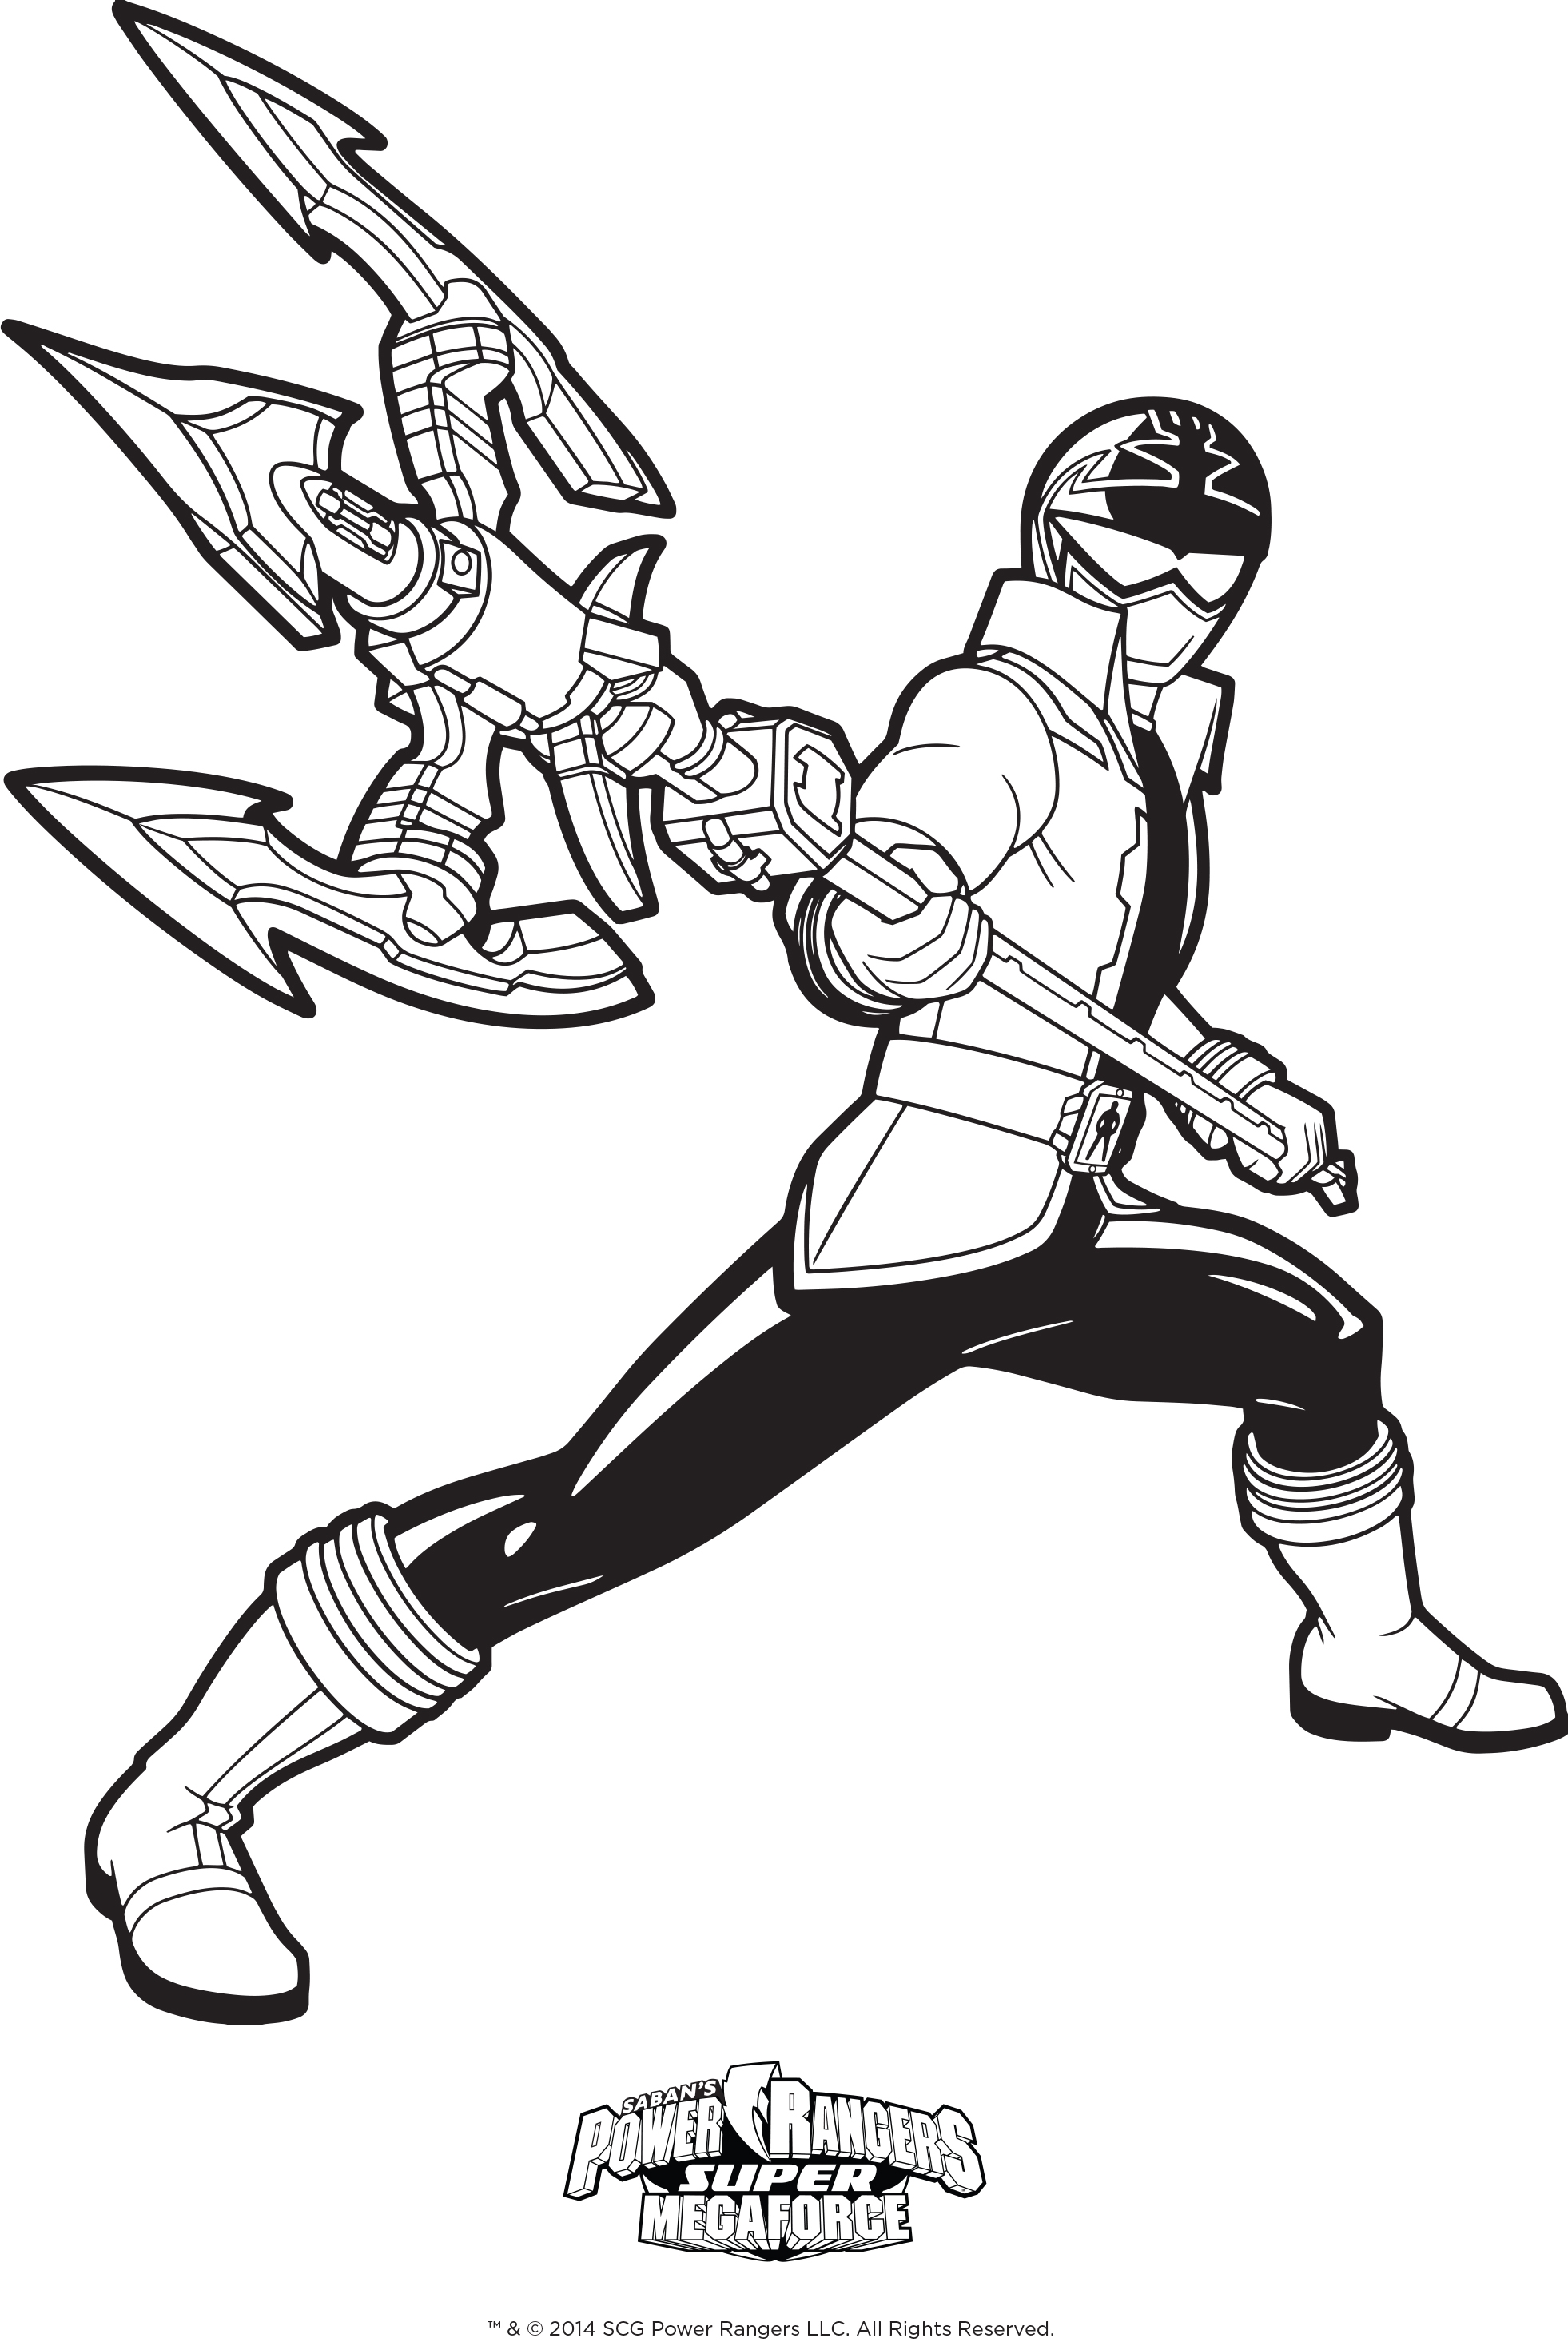 red power ranger coloring page - power rangers coloring pages